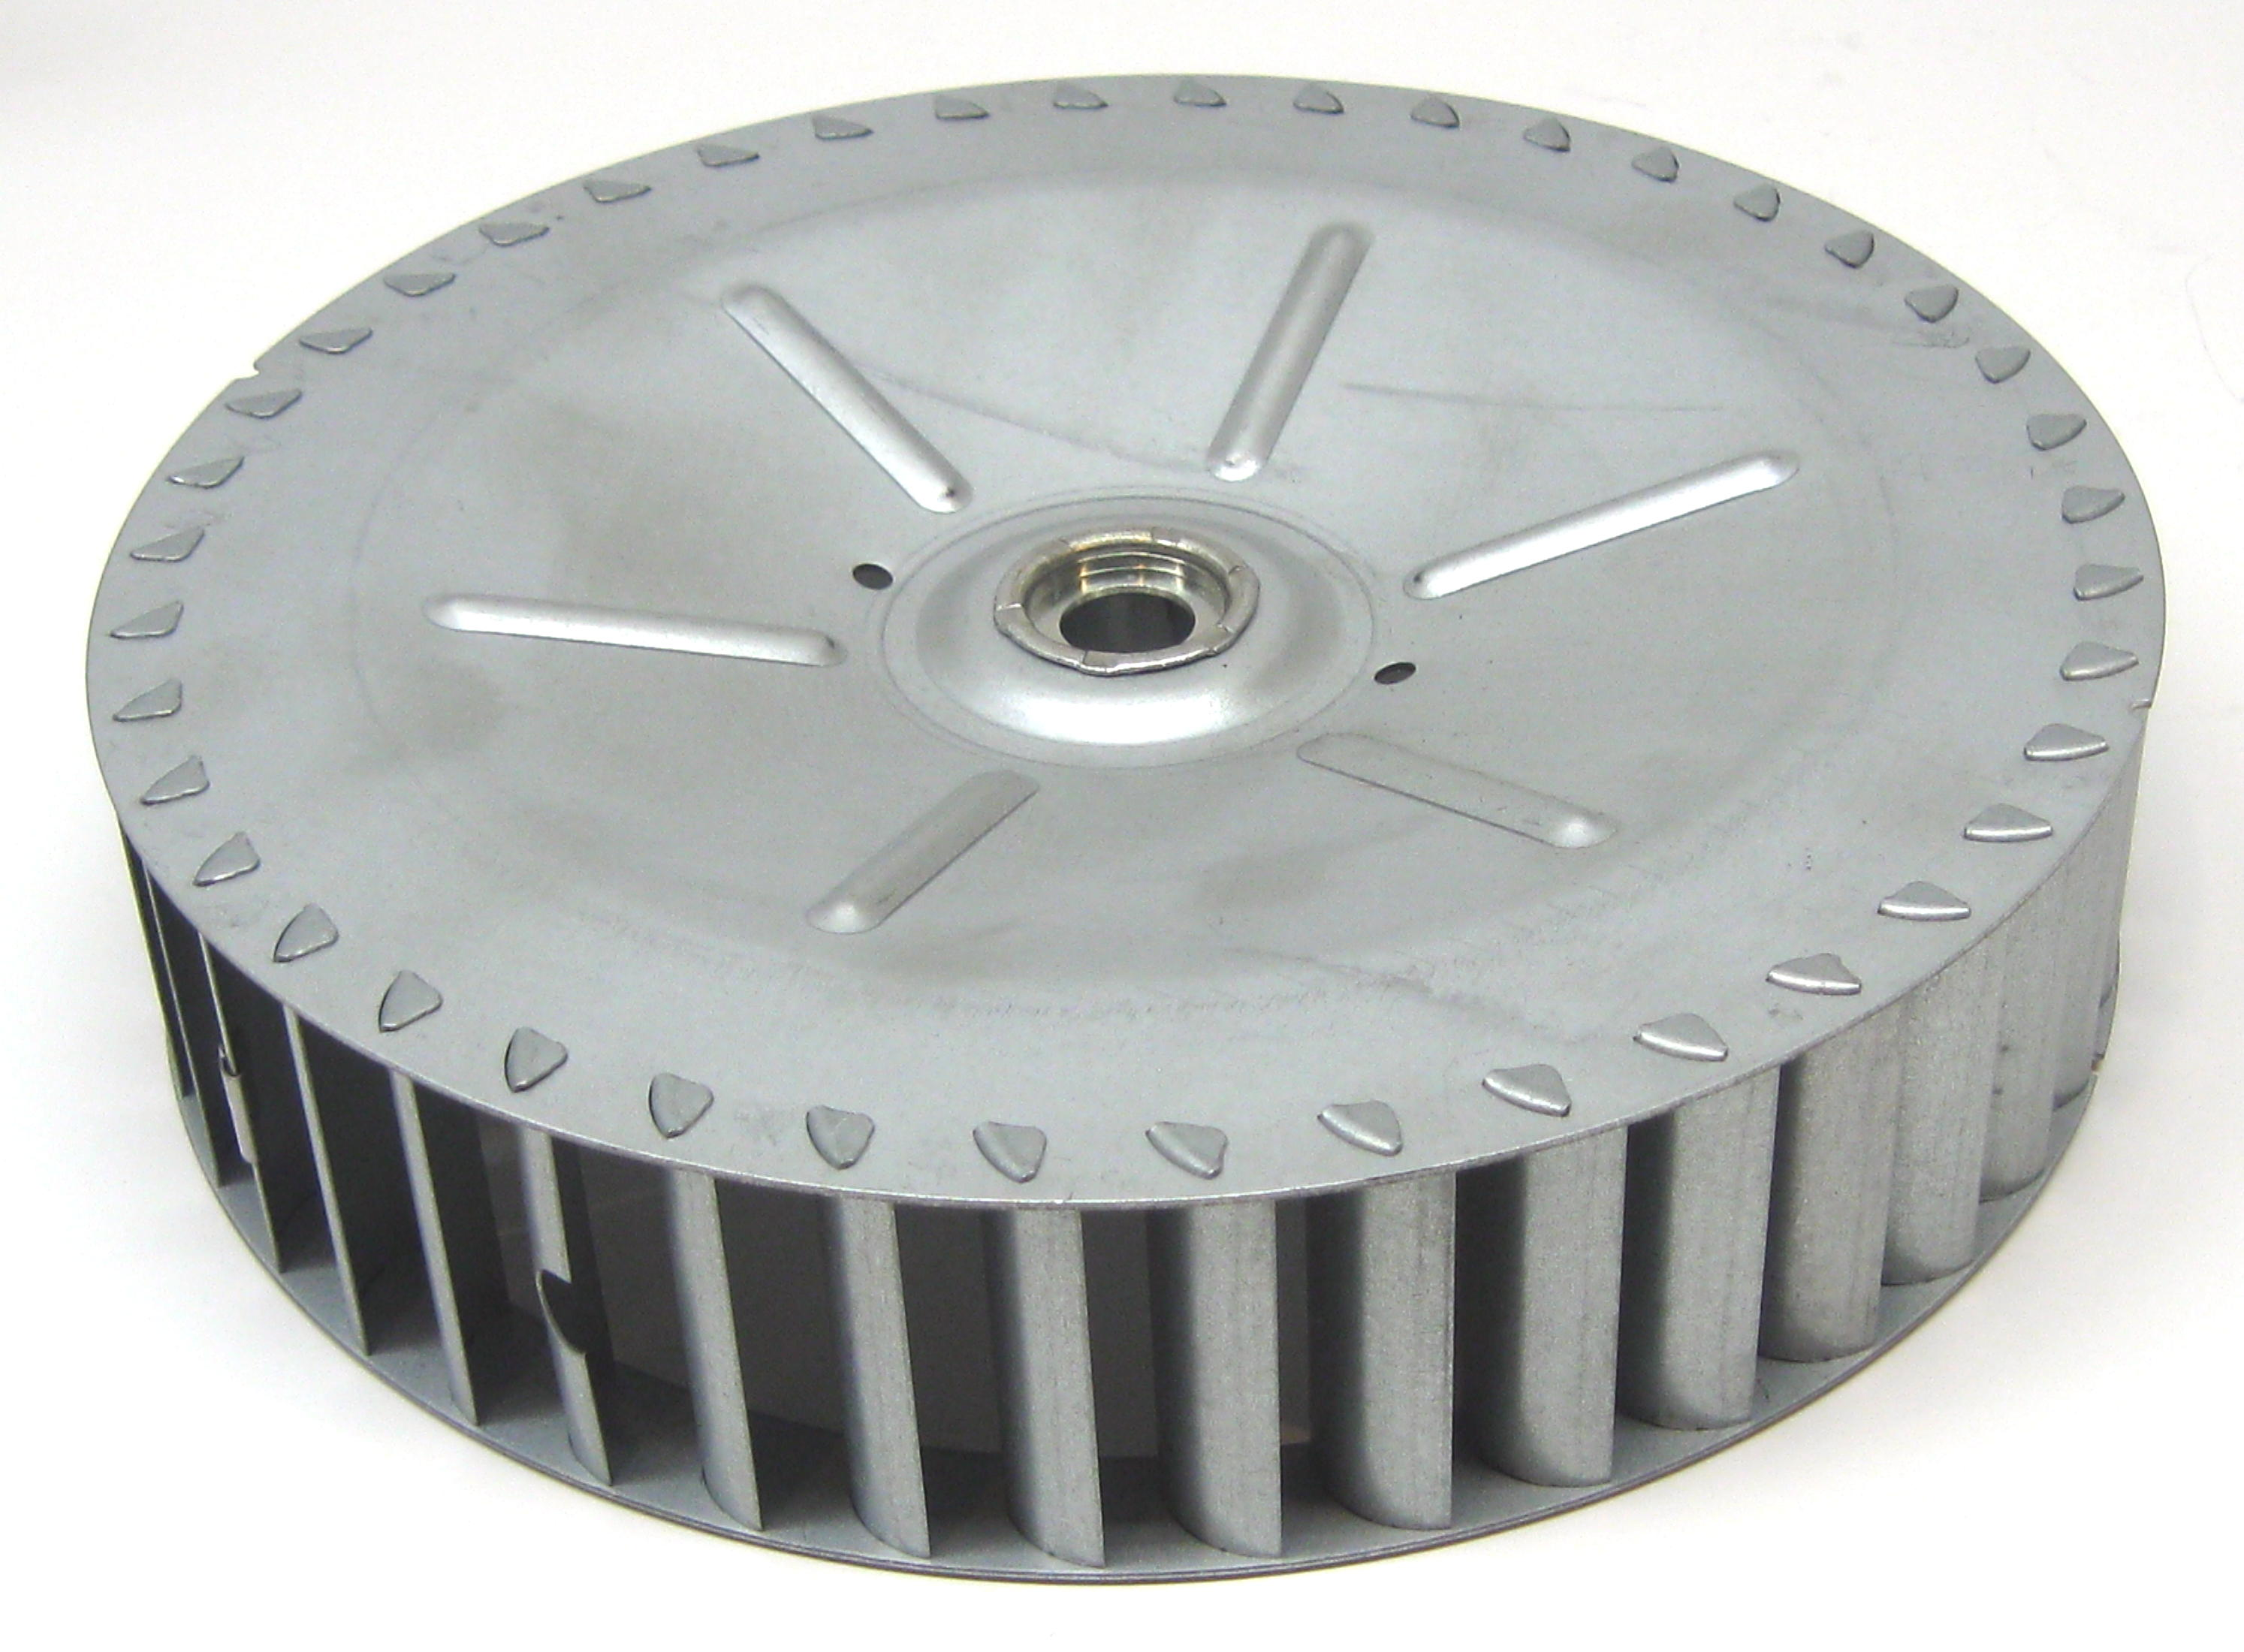 Types Commercial Blower Wheels : Blower wheel for southbend hobart commercial convection